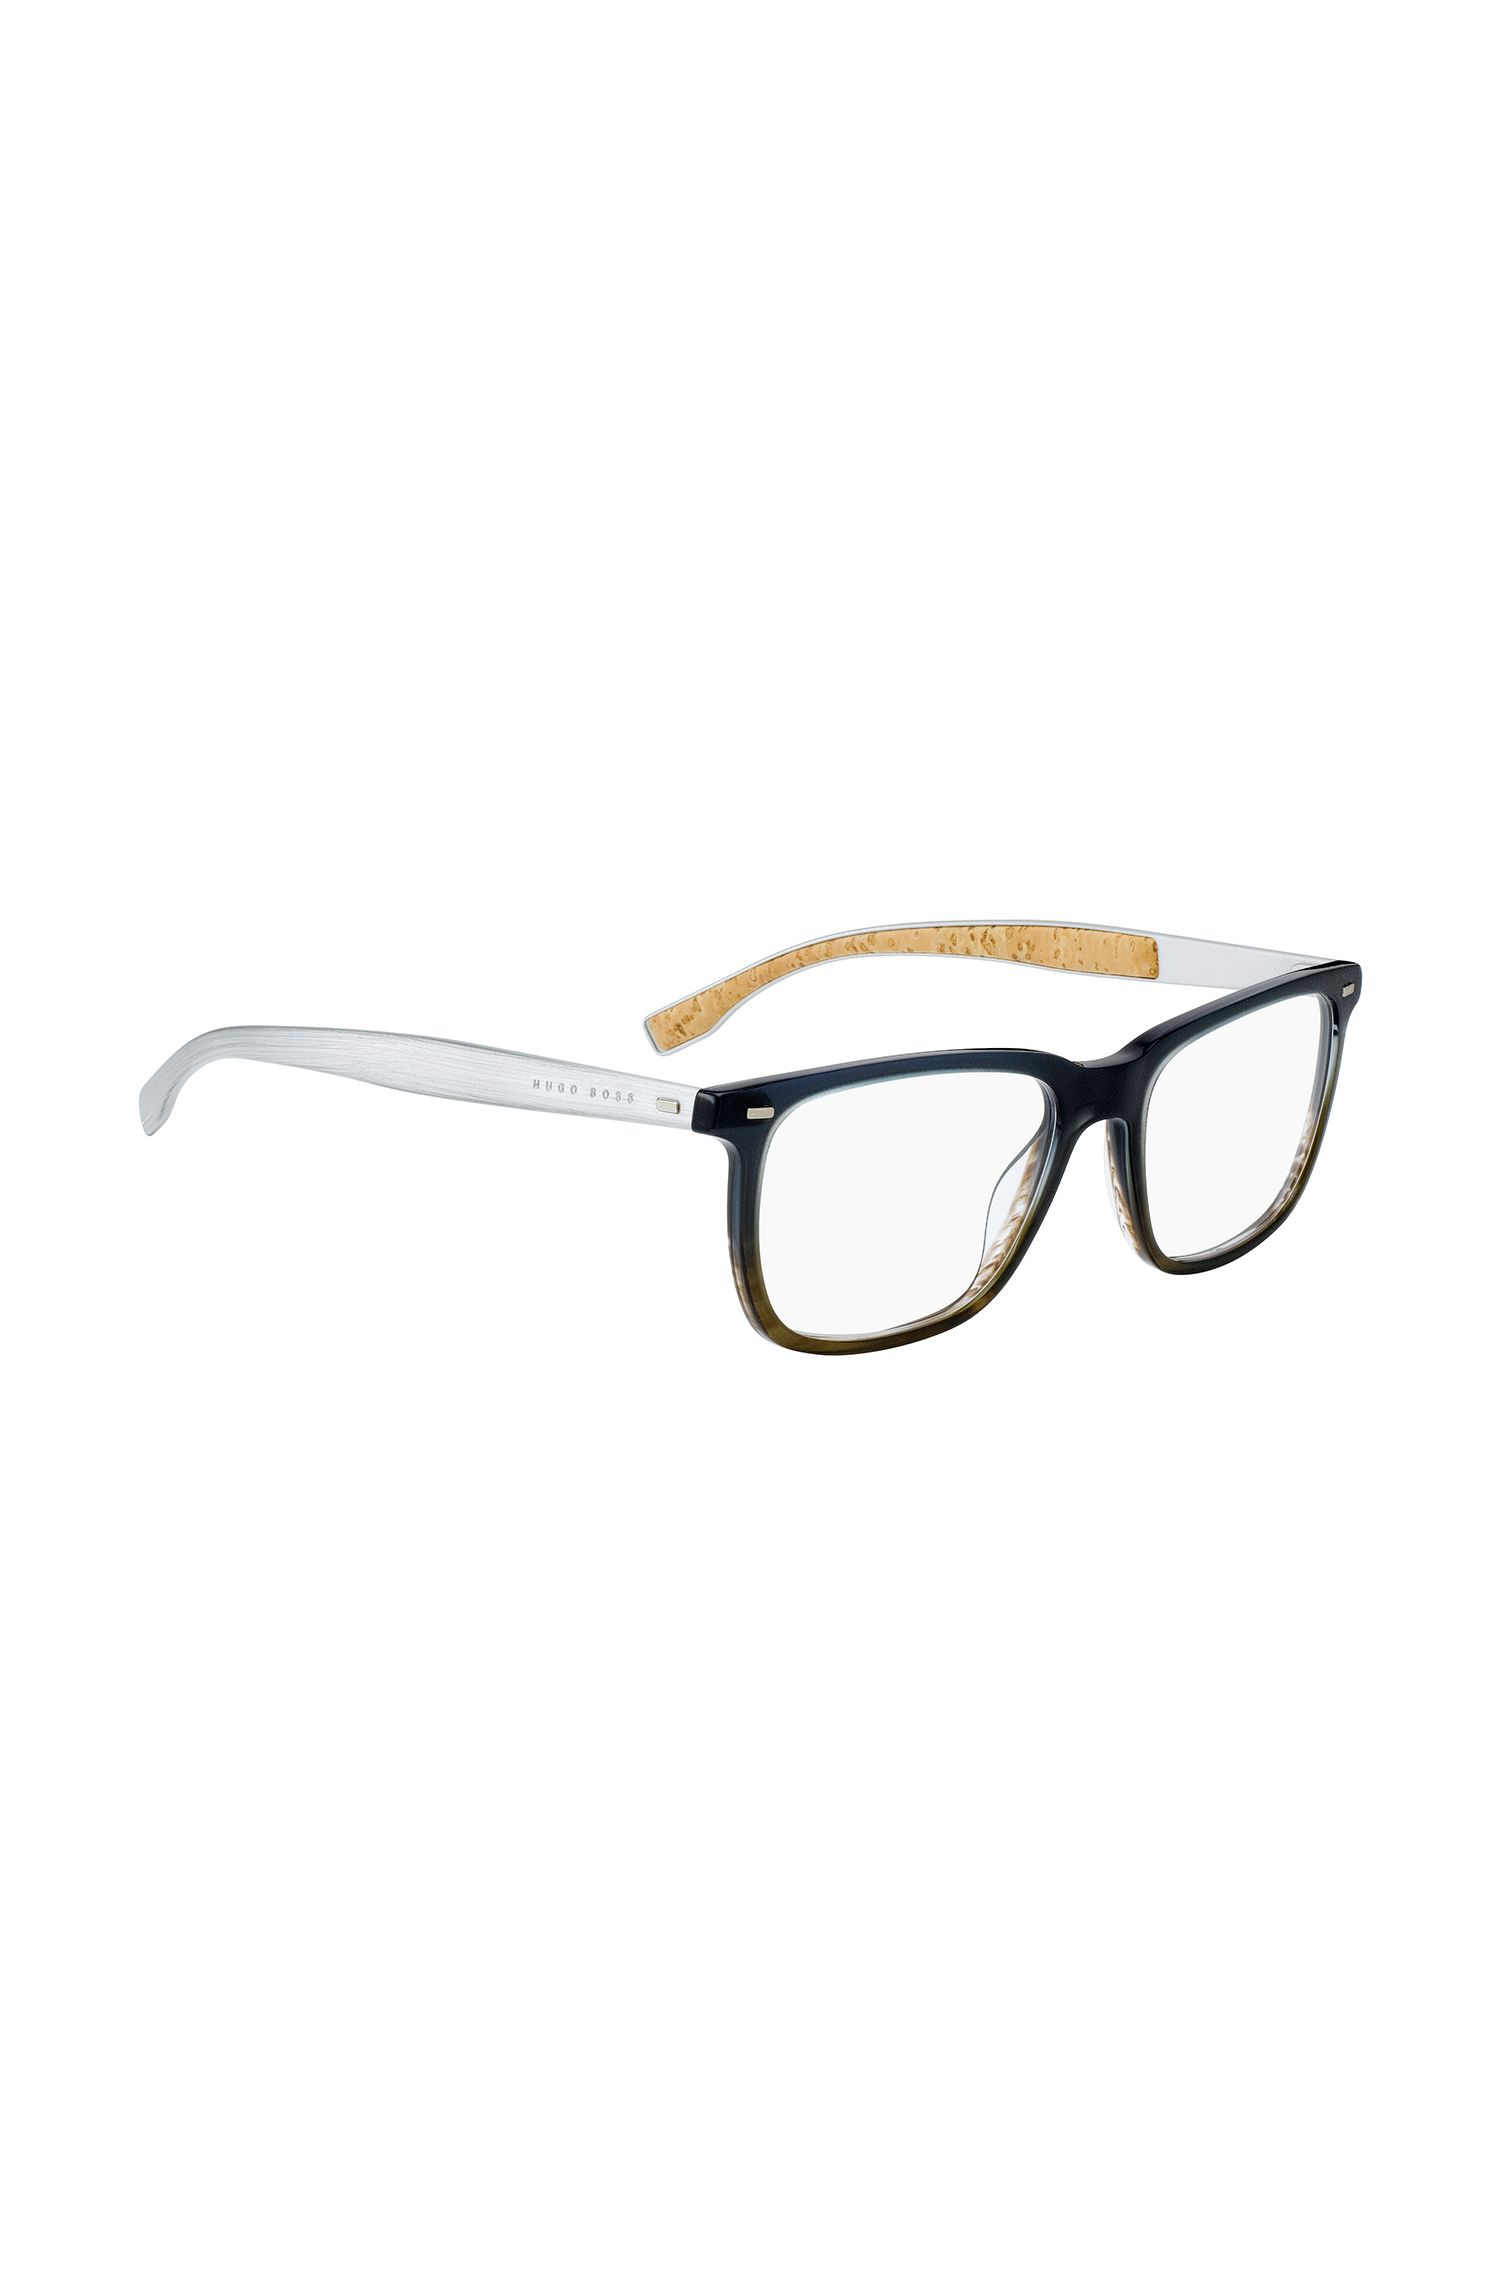 Gradient glasses with cork-lined arms